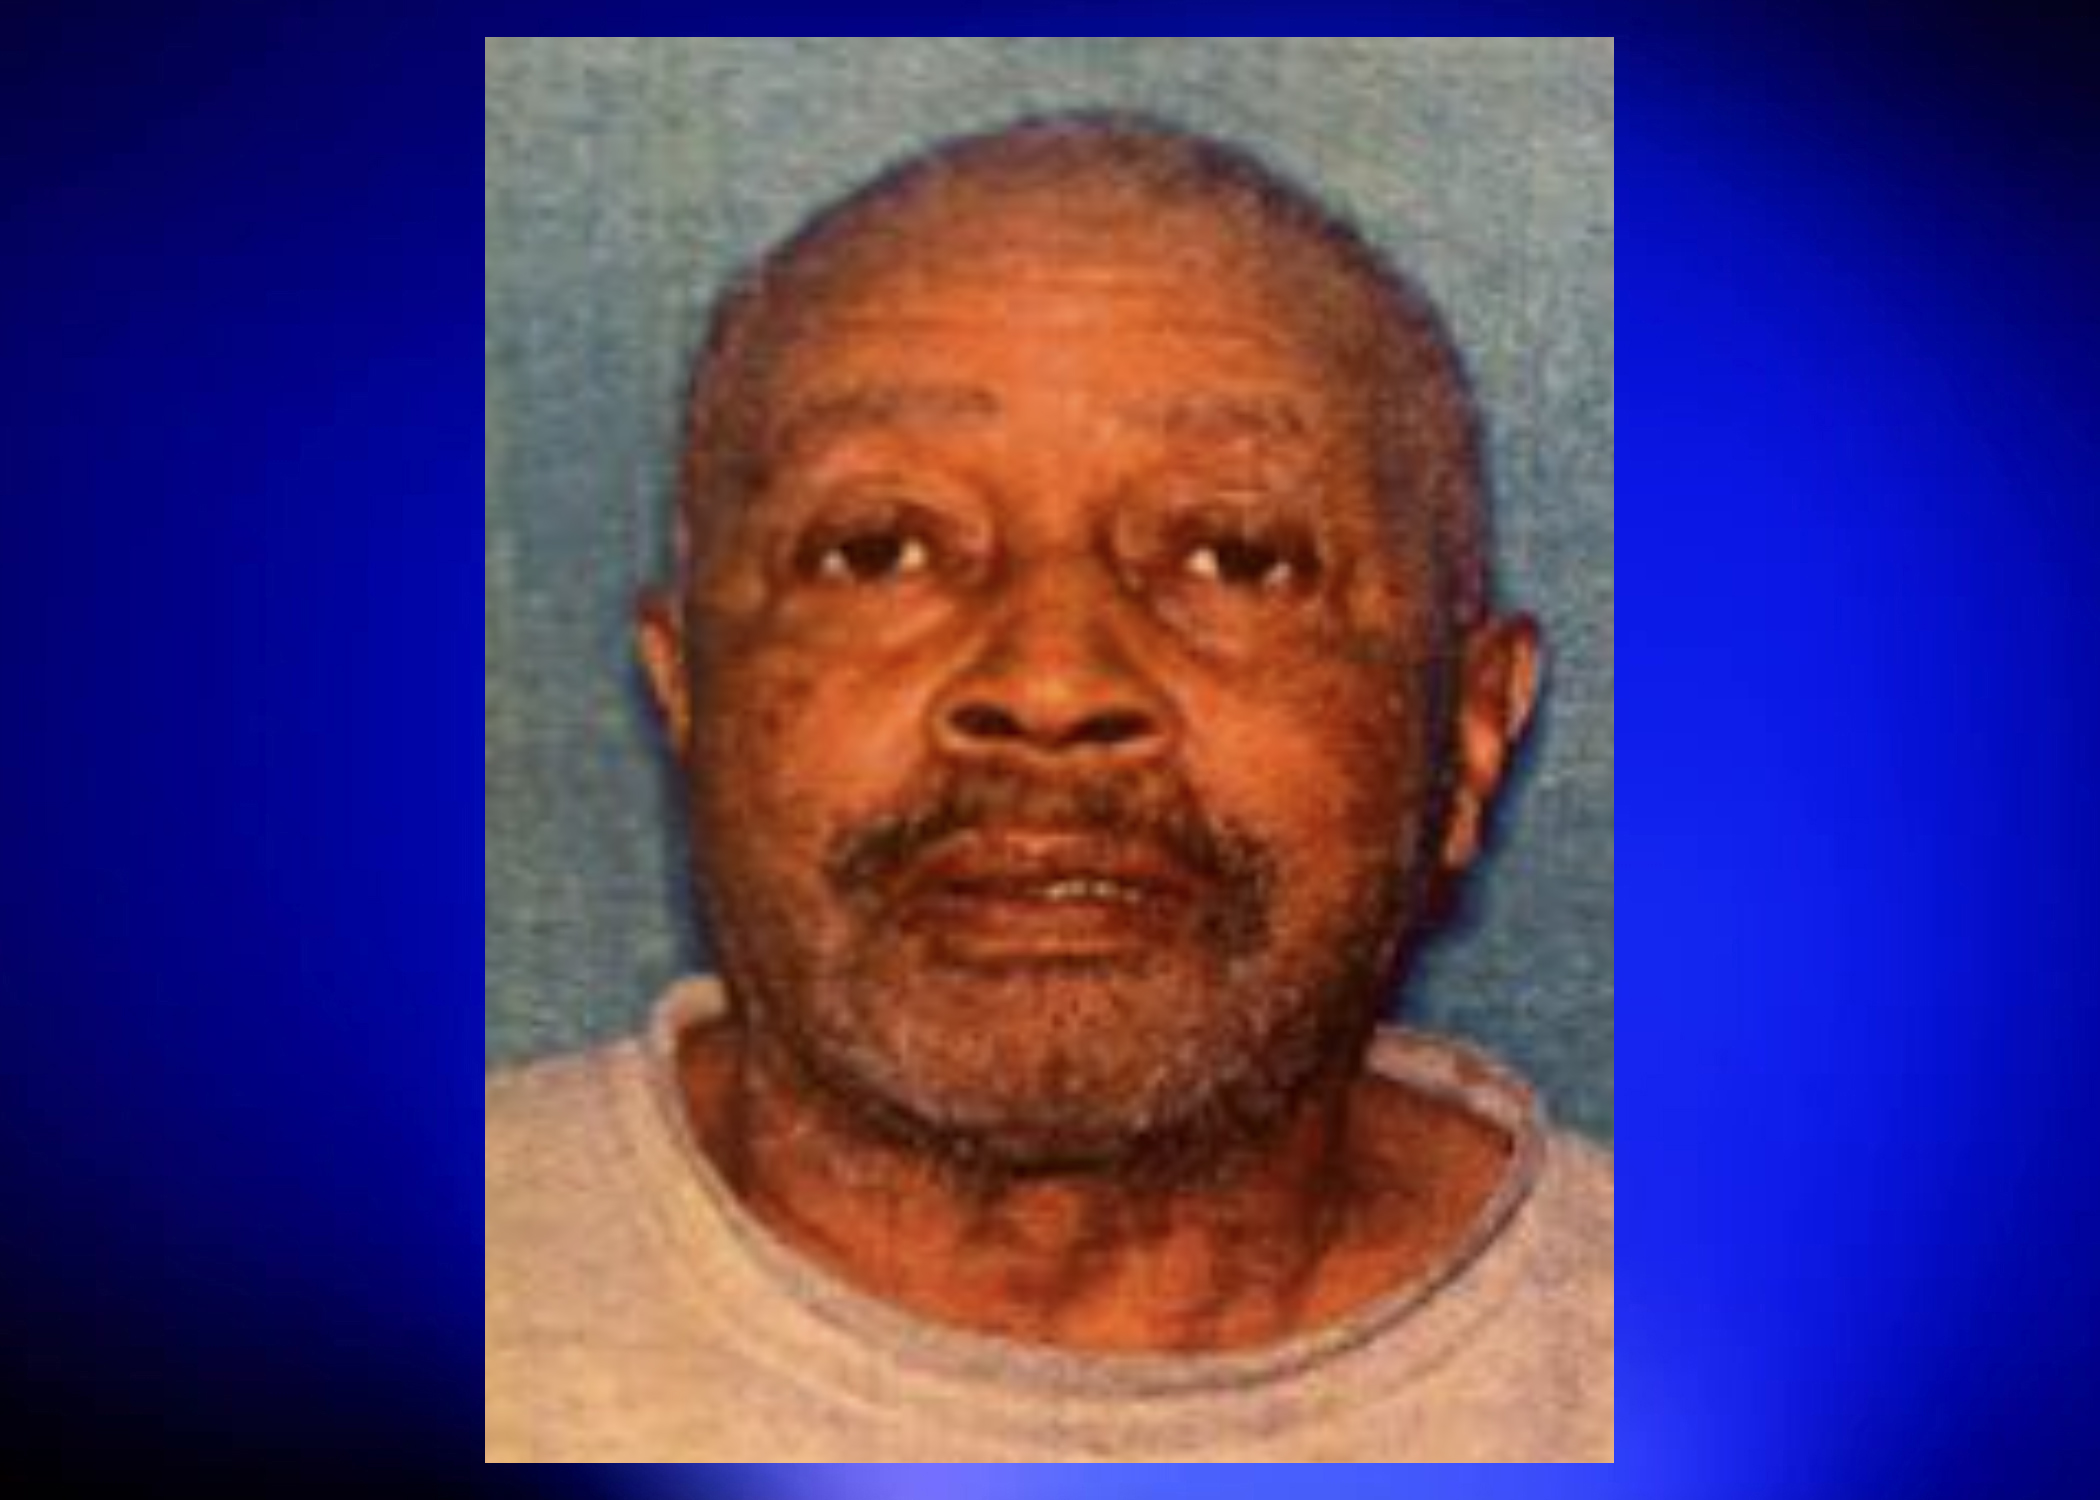 Missing and Endangered Person Alert issued for missing 71-year-old man